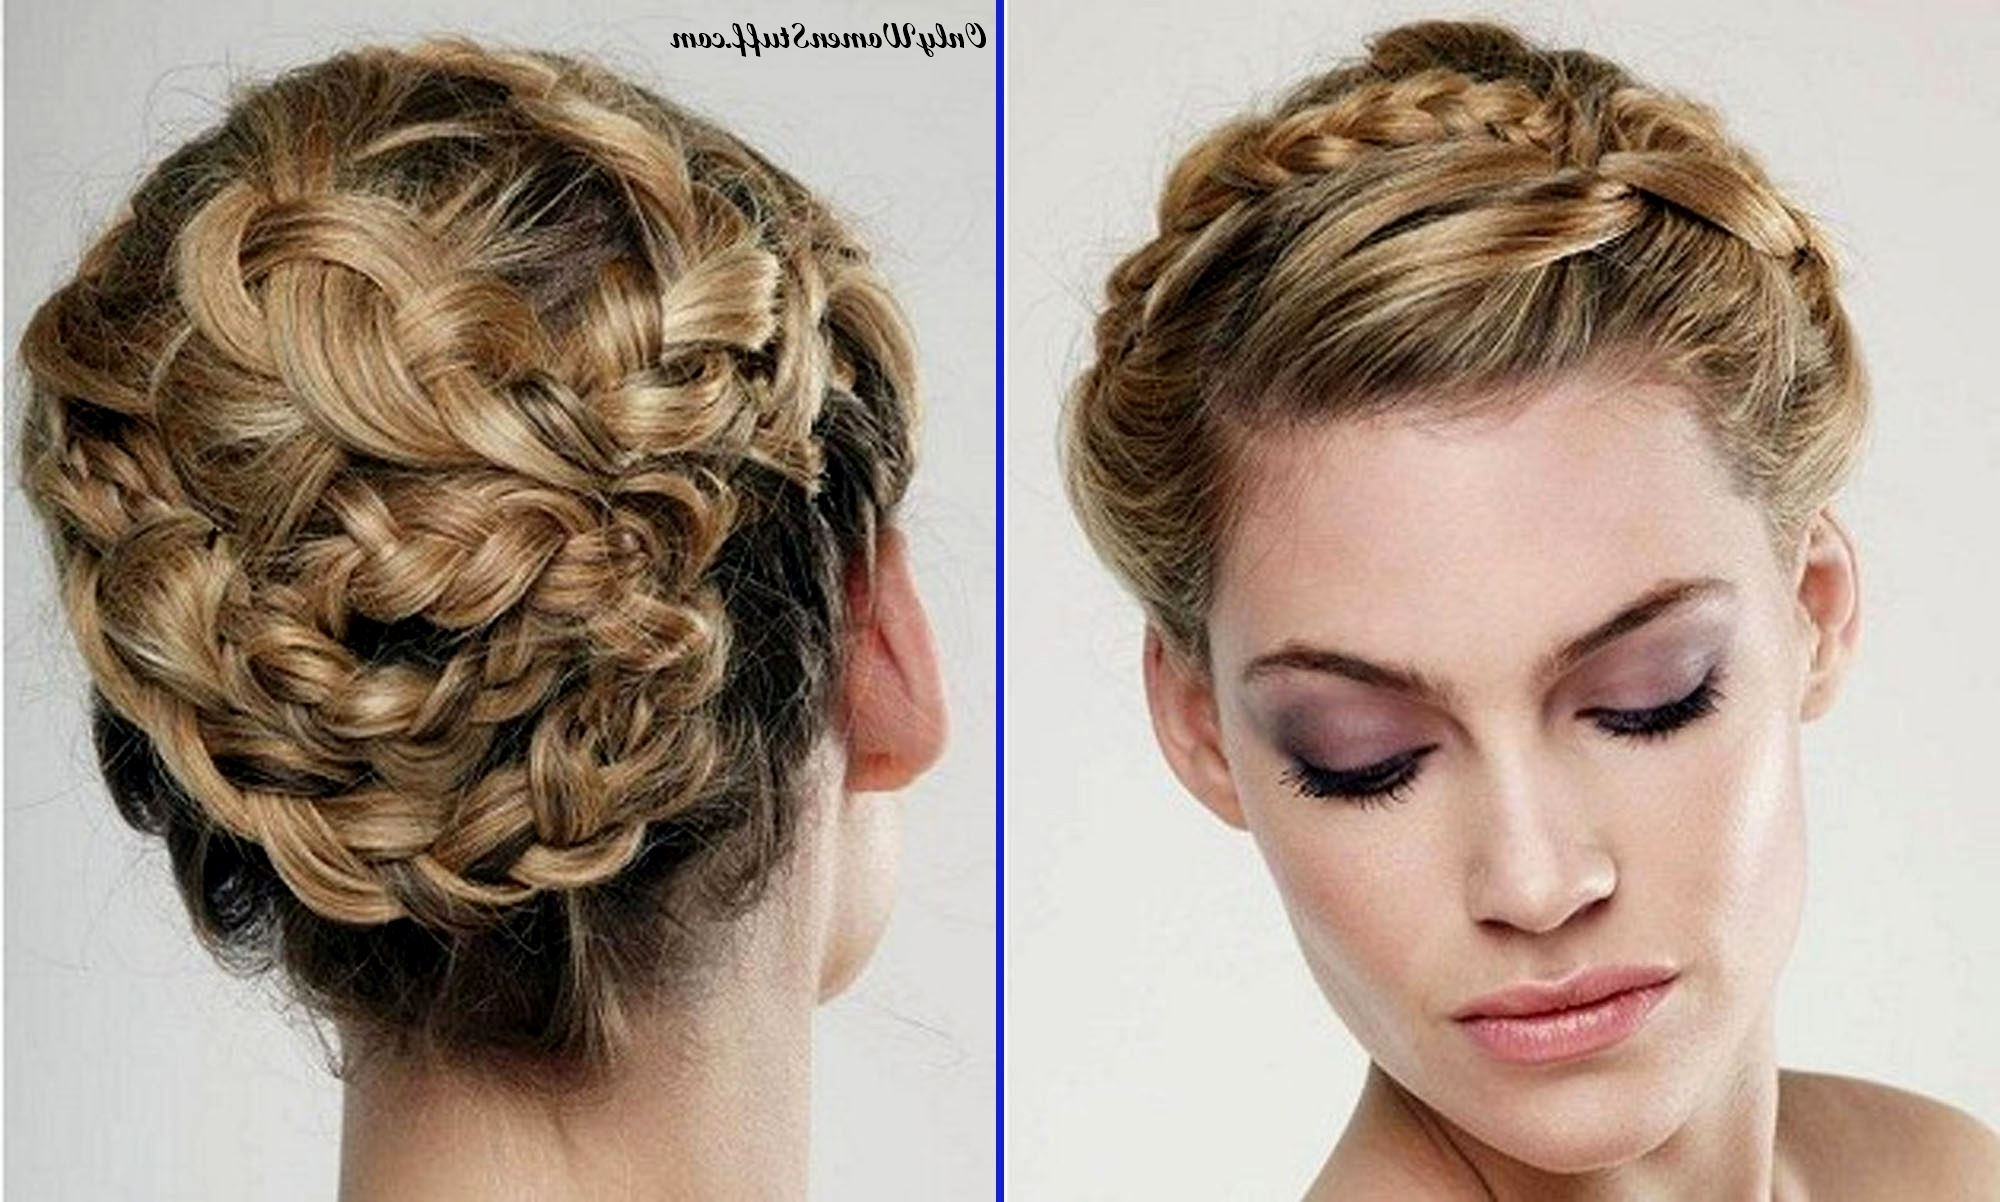 50+ Easy Prom Hairstyles & Updos Ideas (Stepstep) With Regard To Easy Updo Hairstyles For Medium Hair (View 7 of 15)